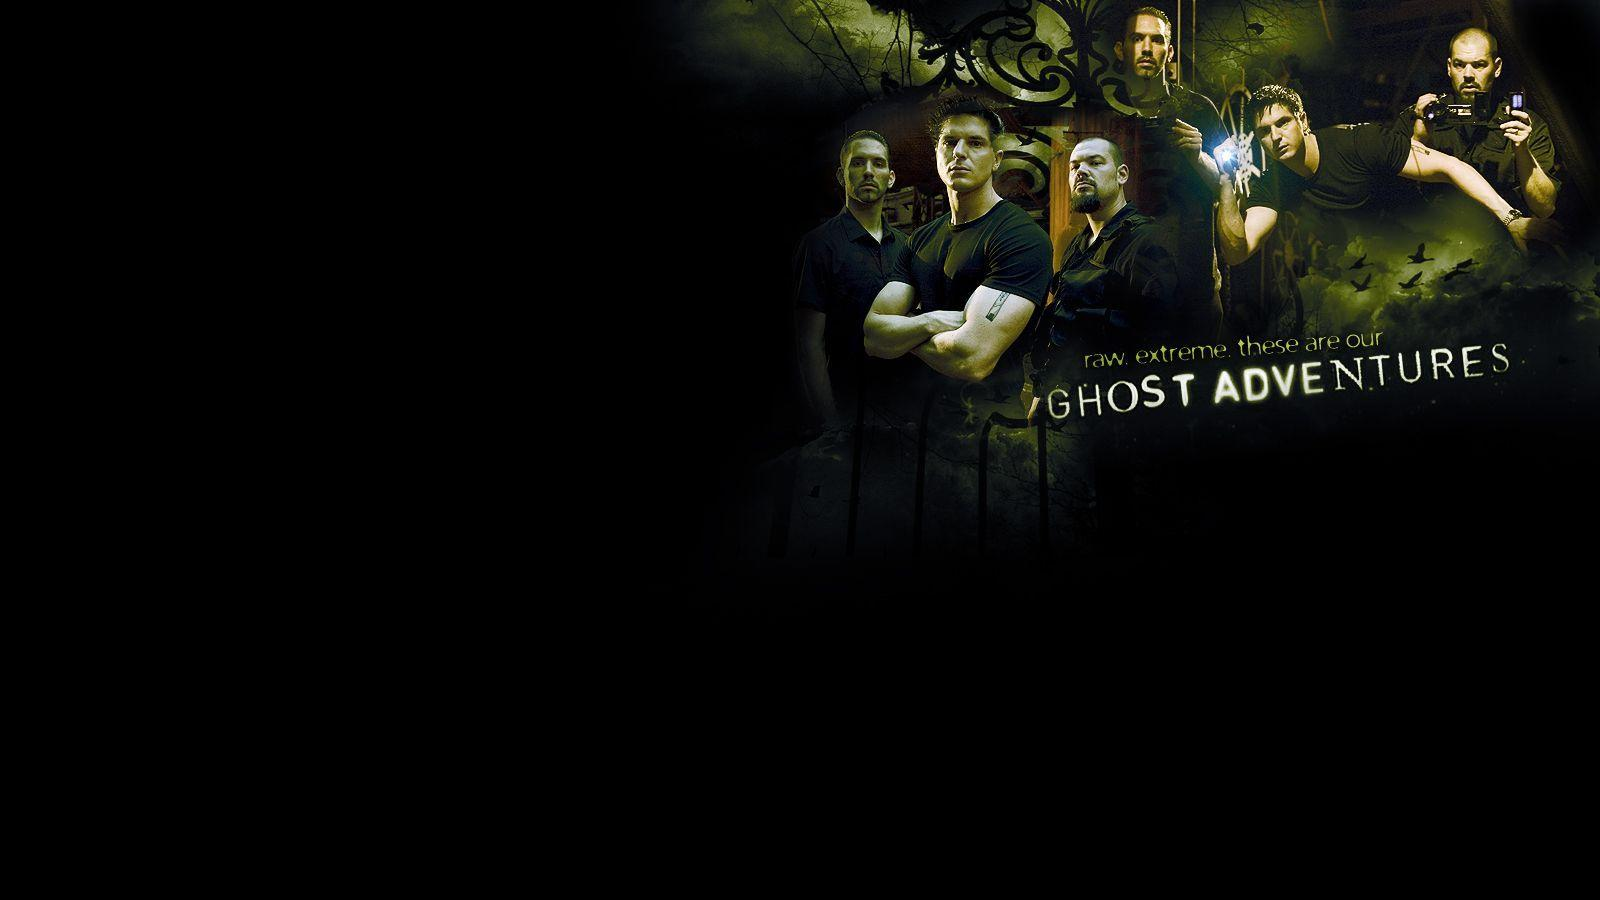 ghost adventures wallpapers - wallpaper cave